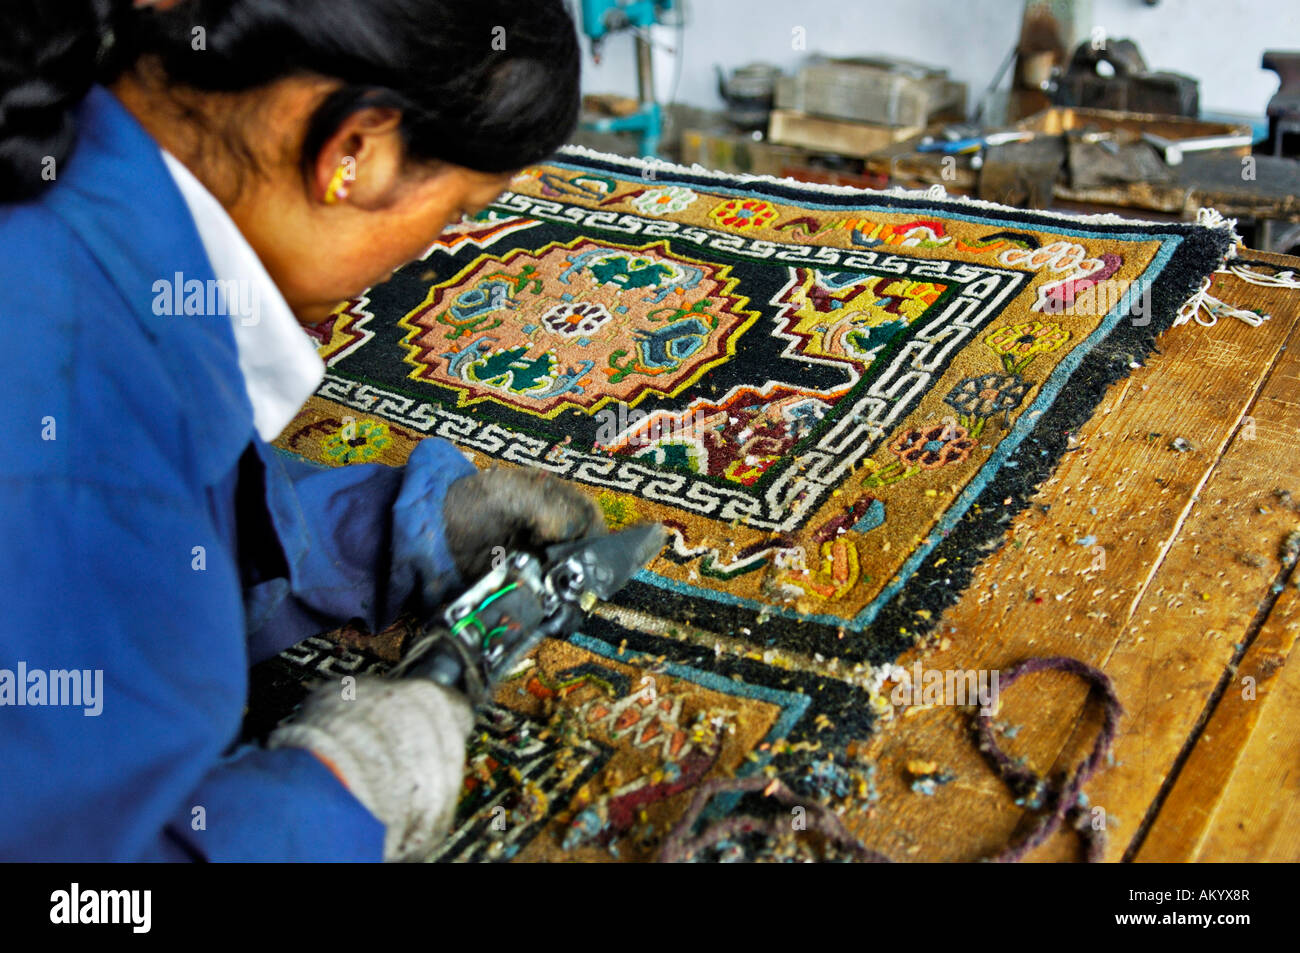 Overlaying material is cut off, carpet manufacture, Shigatse, Tibet, Asia - Stock Image